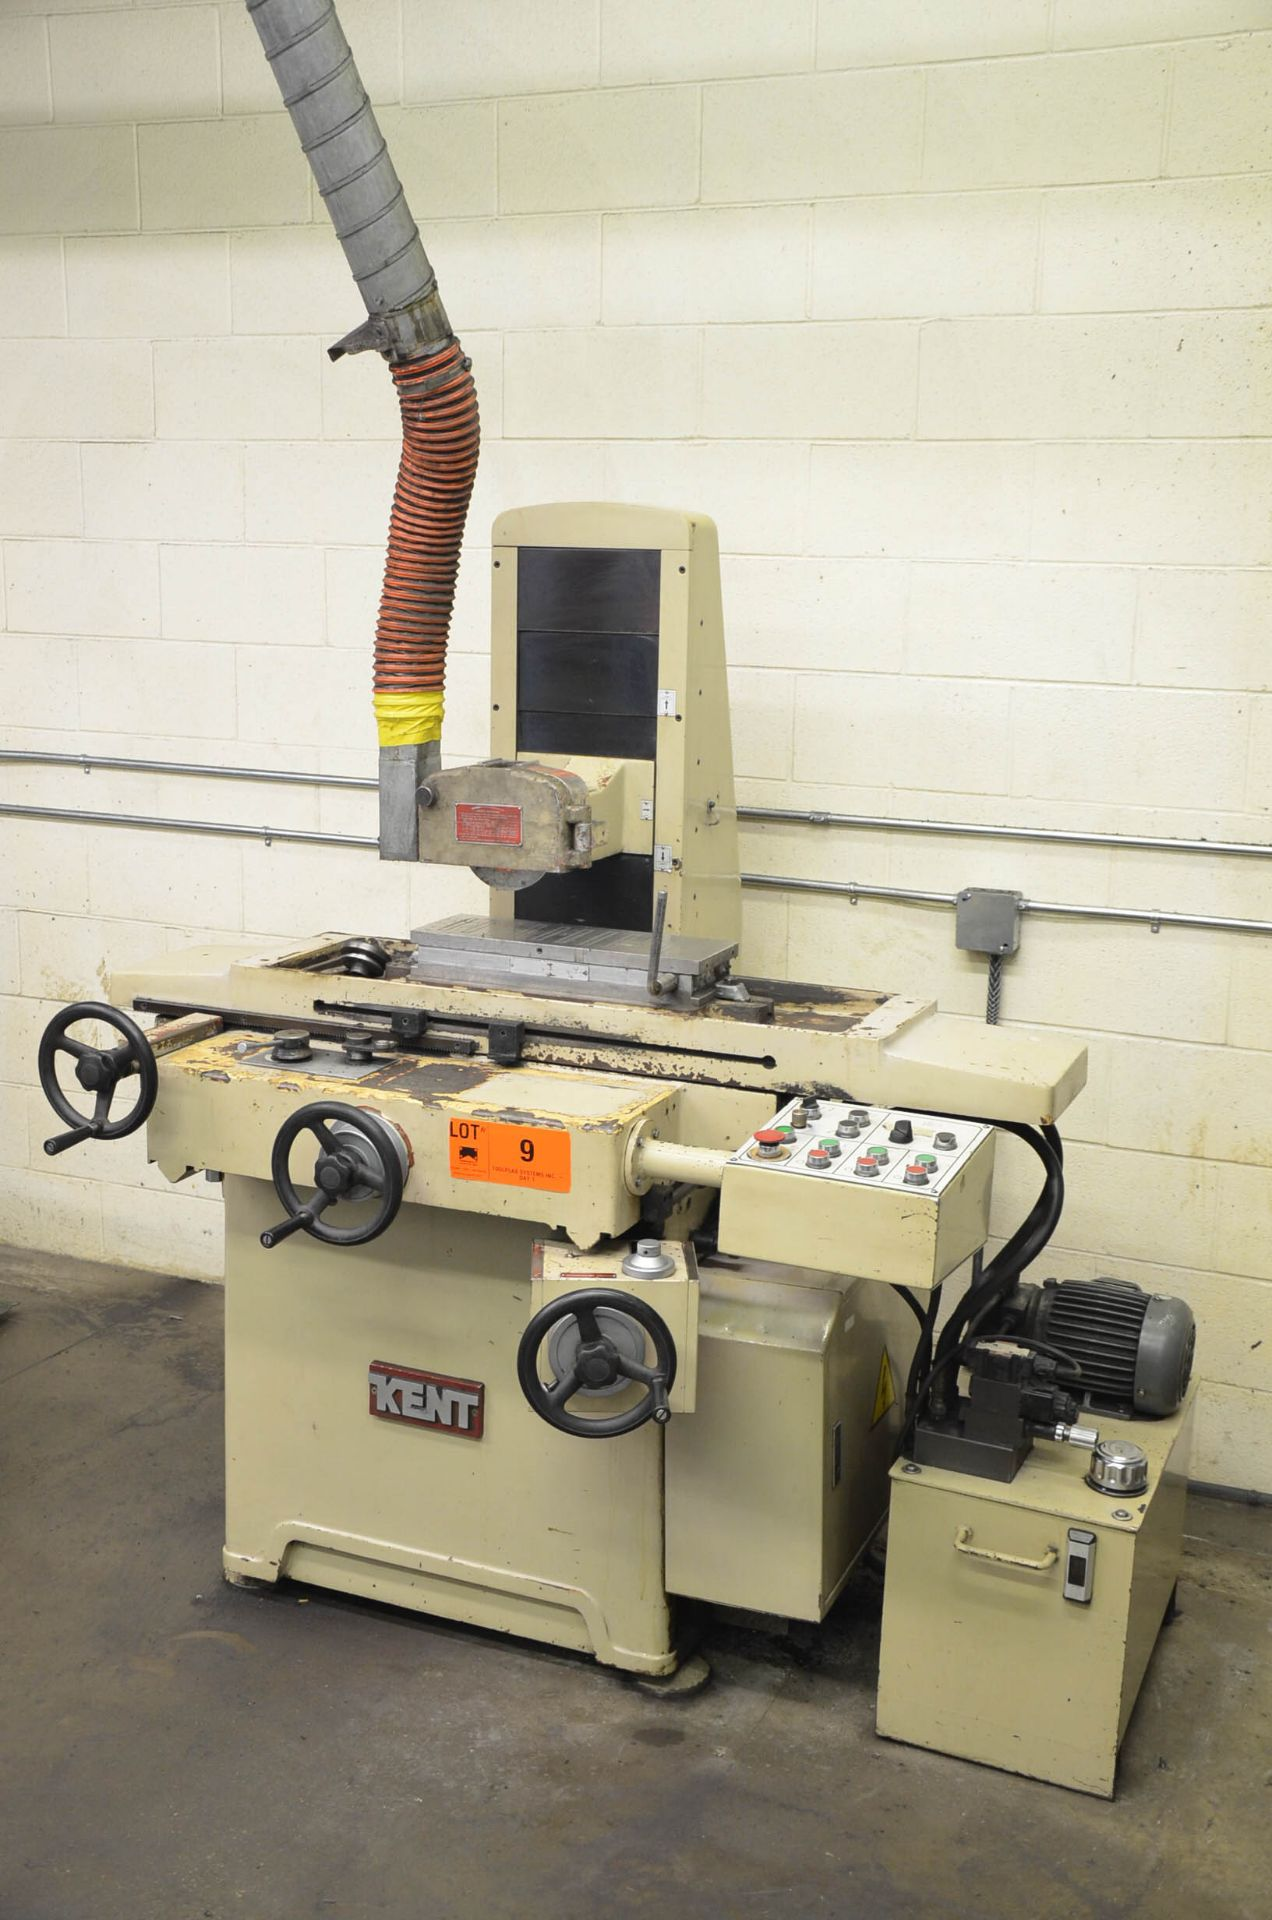 """KENT CGS-818AHD HYDRAULIC SURFACE GRINDER WITH 6""""X18"""" MAGNETIC CHUCK, 8"""" WHEEL, INCREMENTAL DOWN- - Image 3 of 5"""